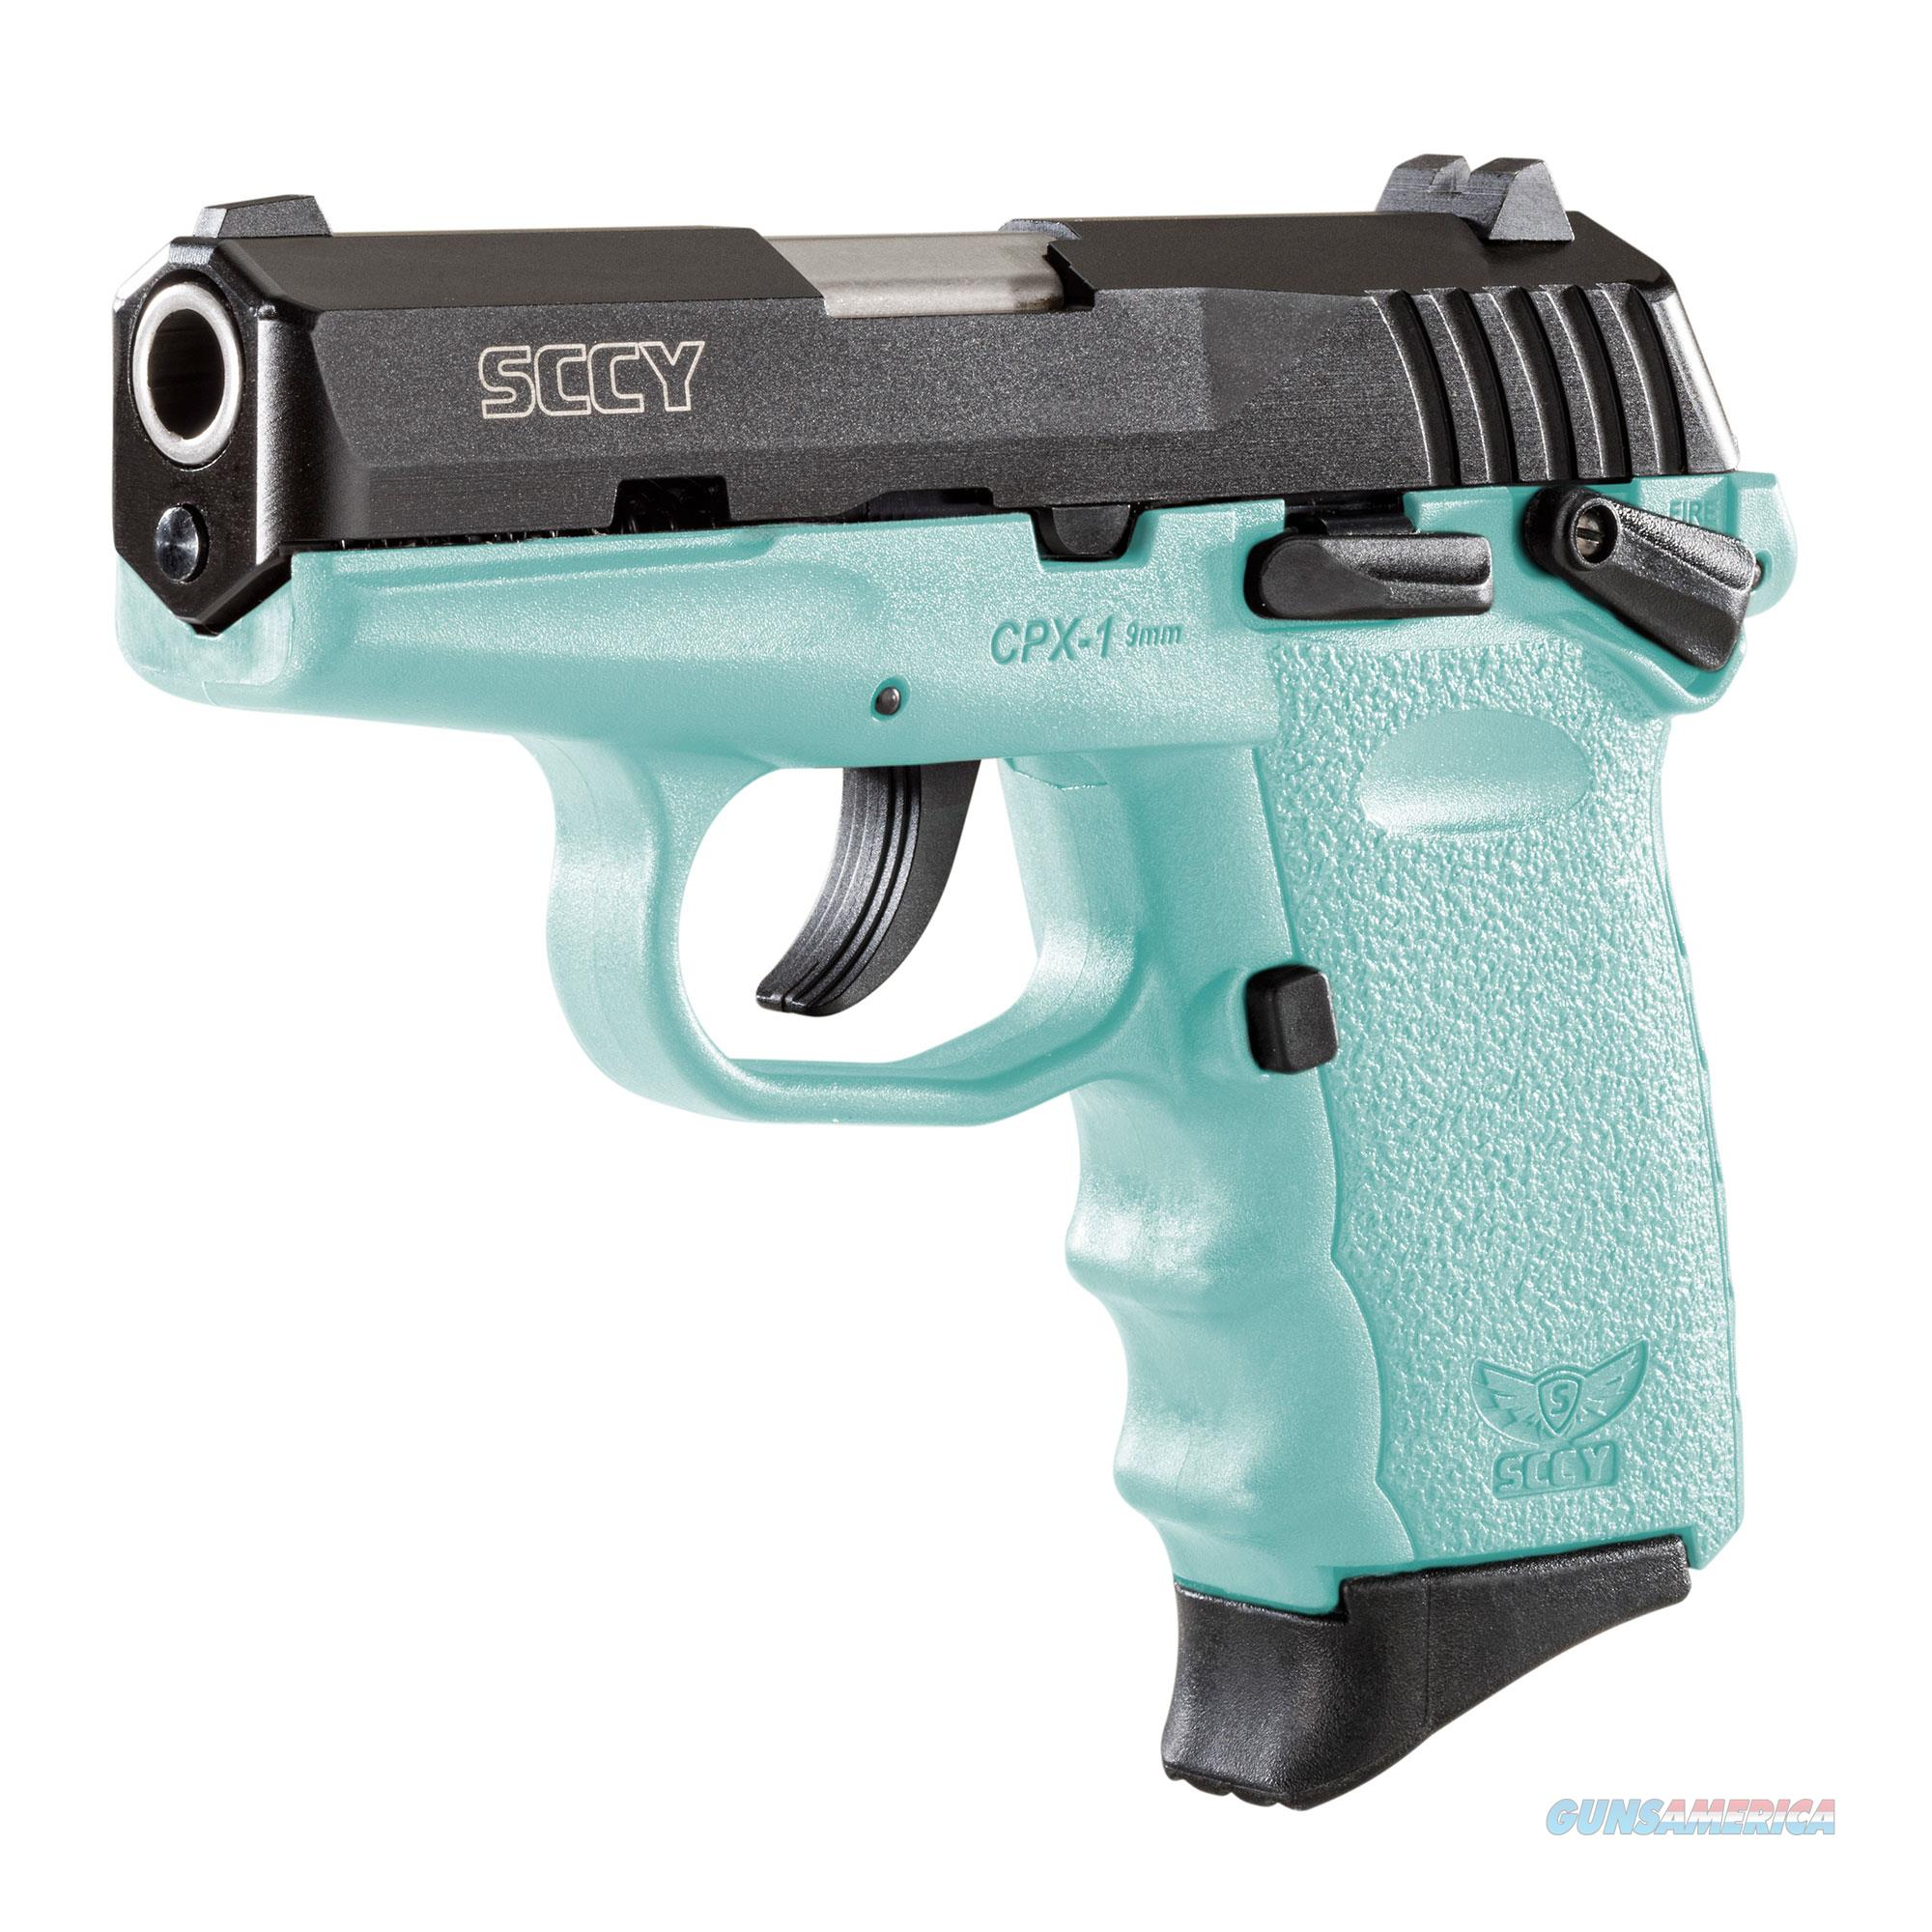 SCCY CPX-1 9mm Auto Pistol with Safety – Black/Robin Egg Blue - New in Box  Guns > Pistols > SCCY Pistols > CPX1